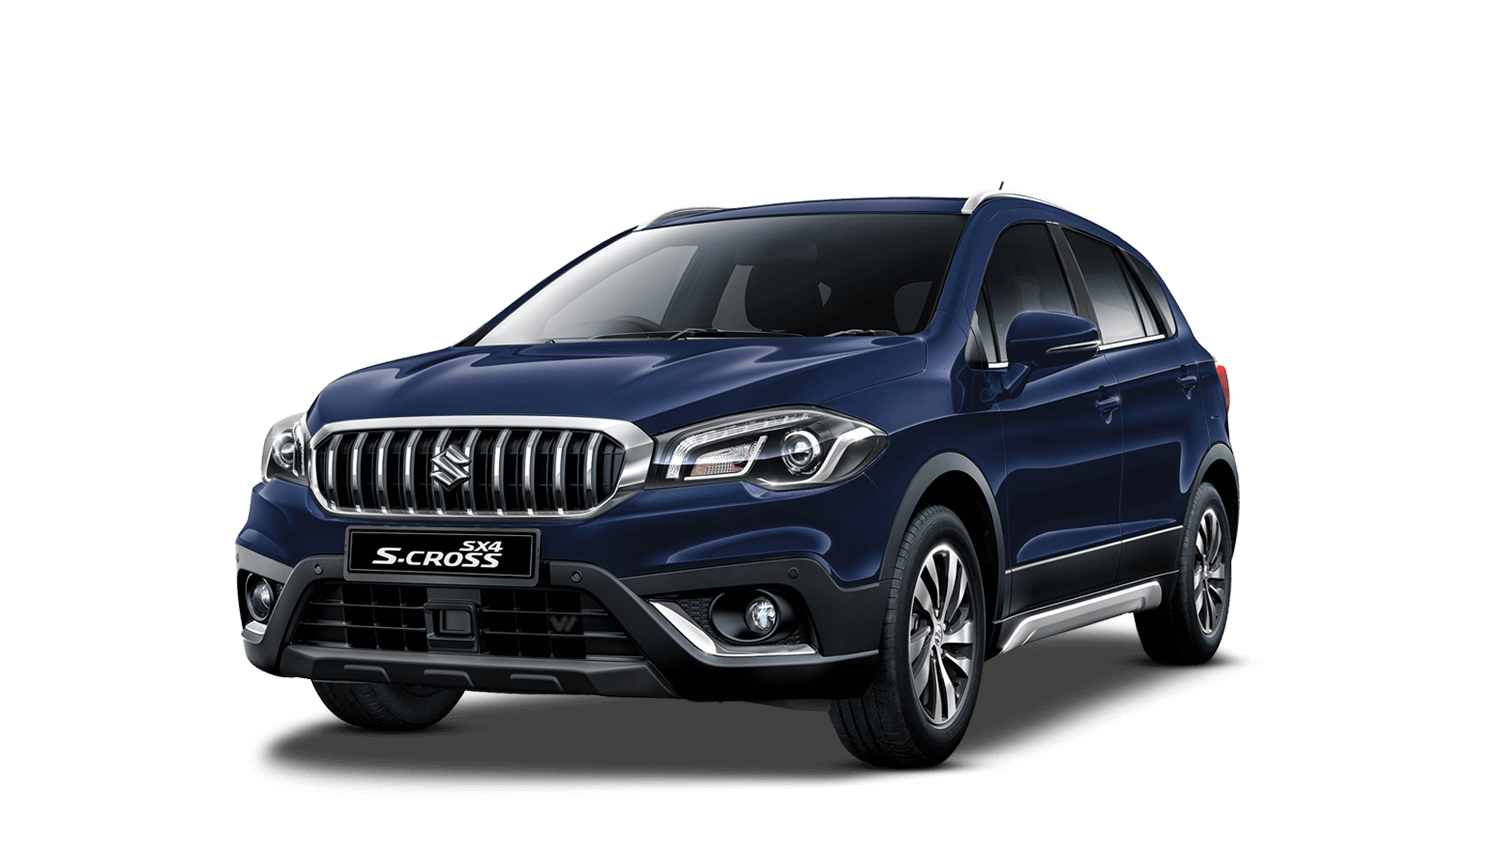 S4X S-Cross New Car Offers